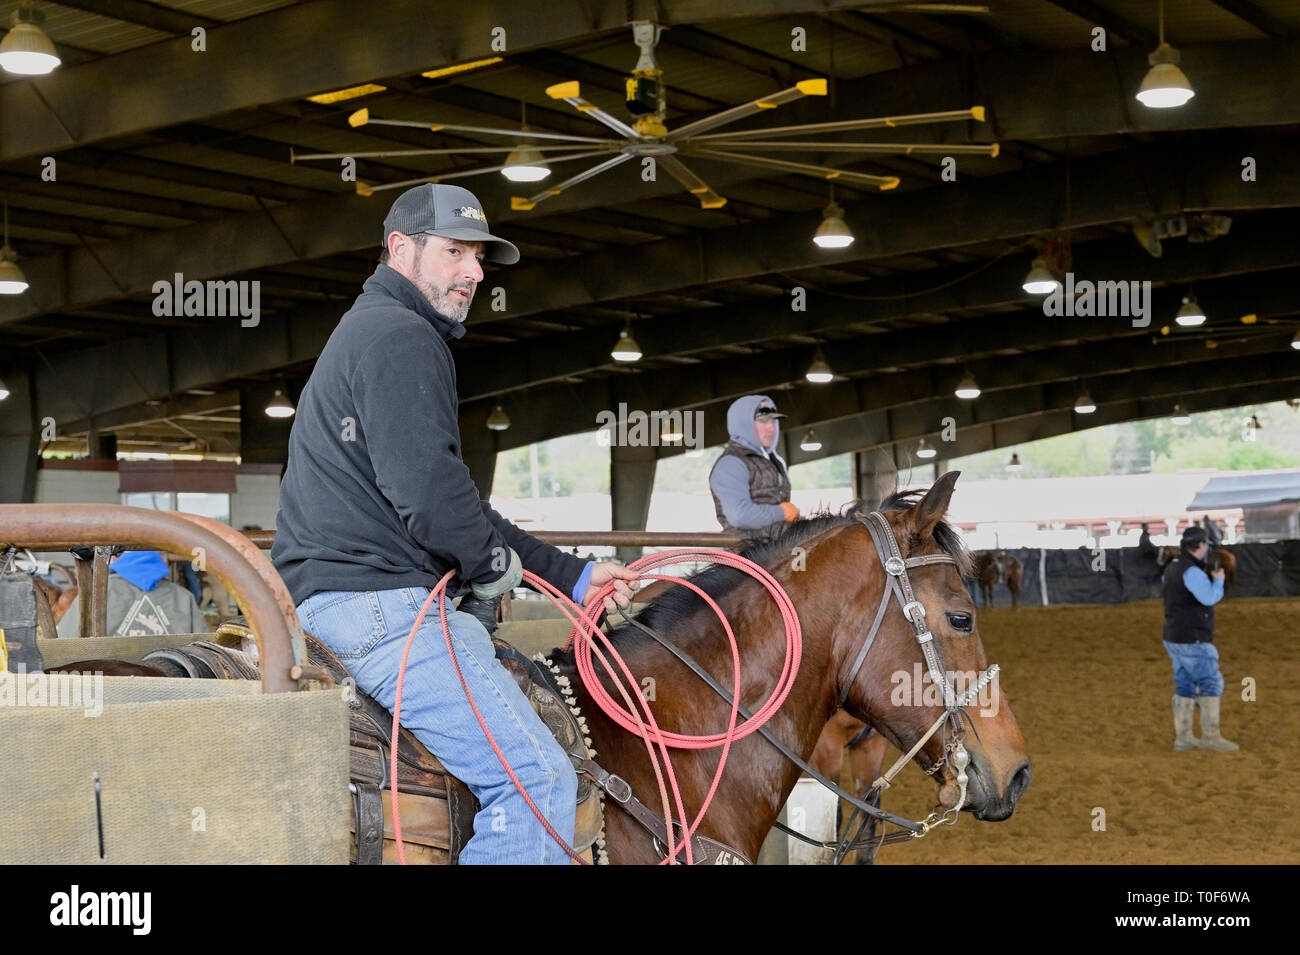 American cowboy on a saddled bay horse waiting for a team roping event or practice before a rodeo in Montgomery Alabama, USA. - Stock Image